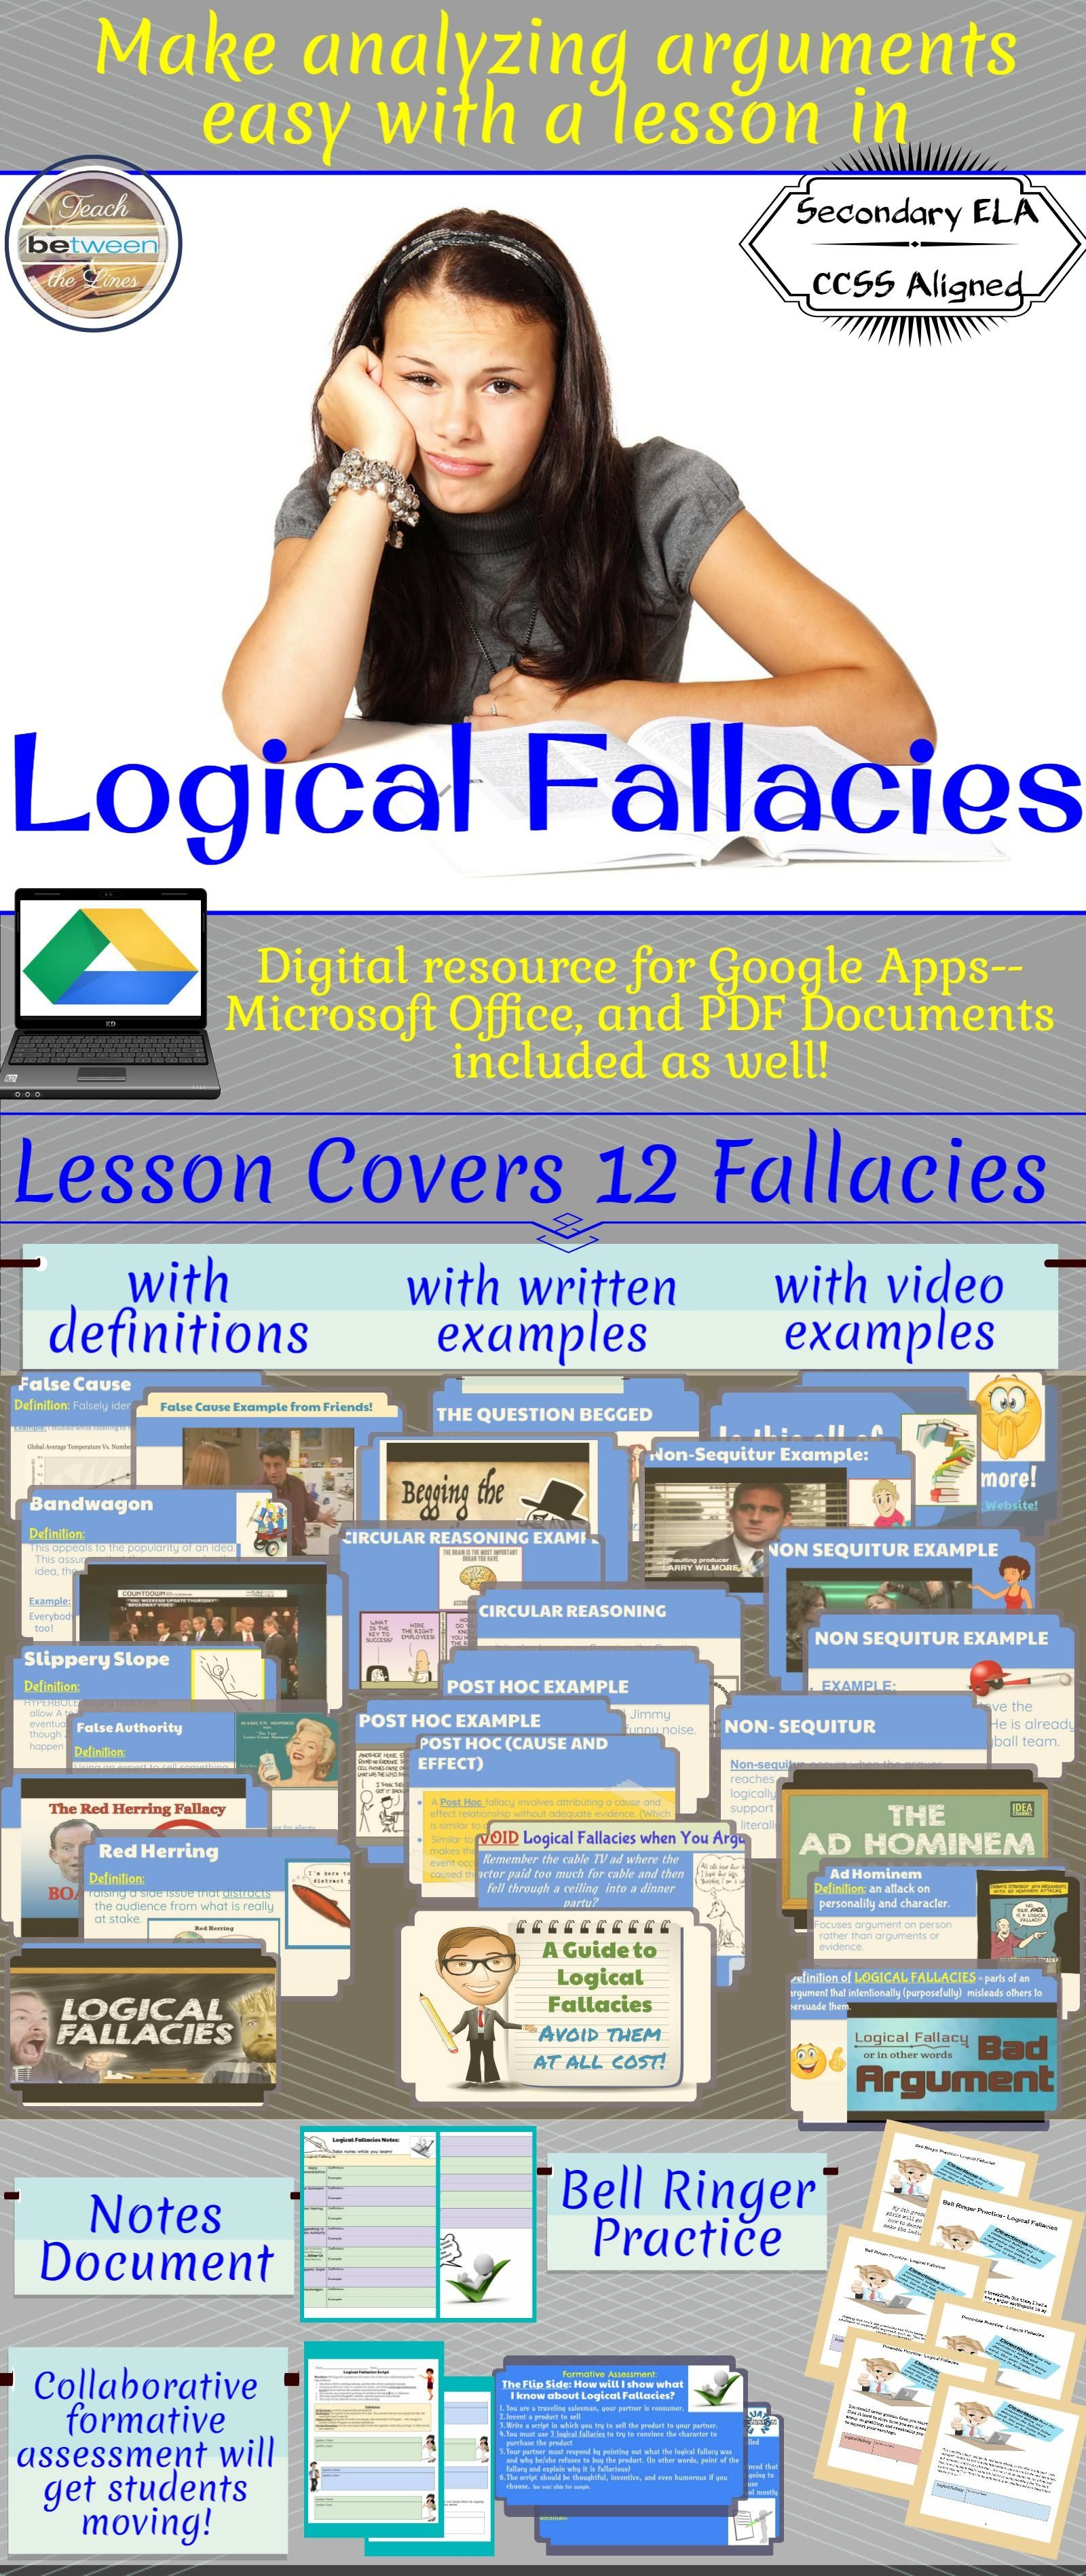 Logical Fallacies Are A Critical Component Of Your